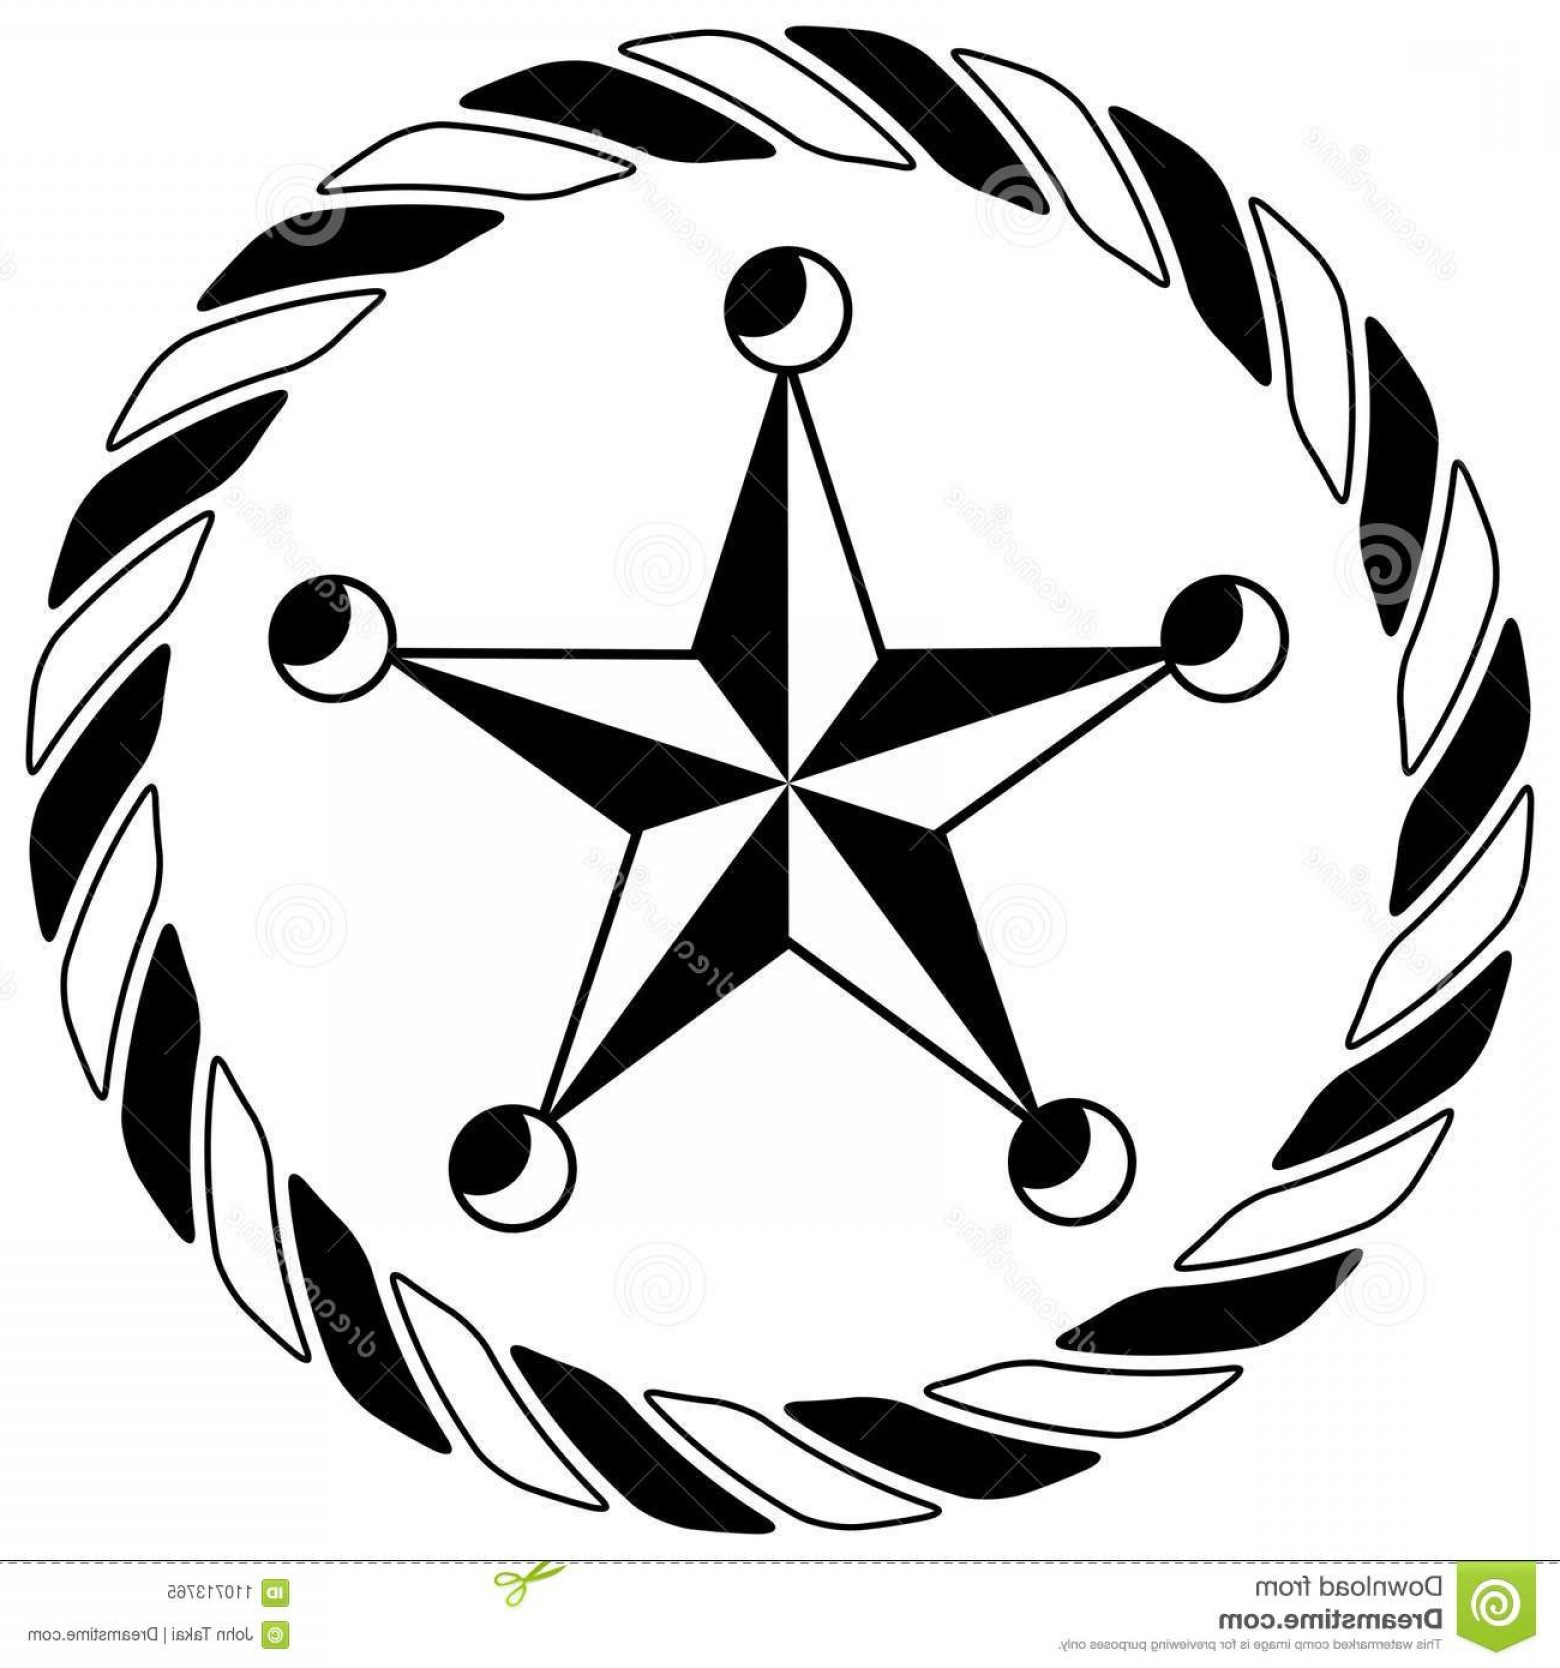 Western Star Vector Graphics: Sheriff Western Star Rope Circle Icon Image Image